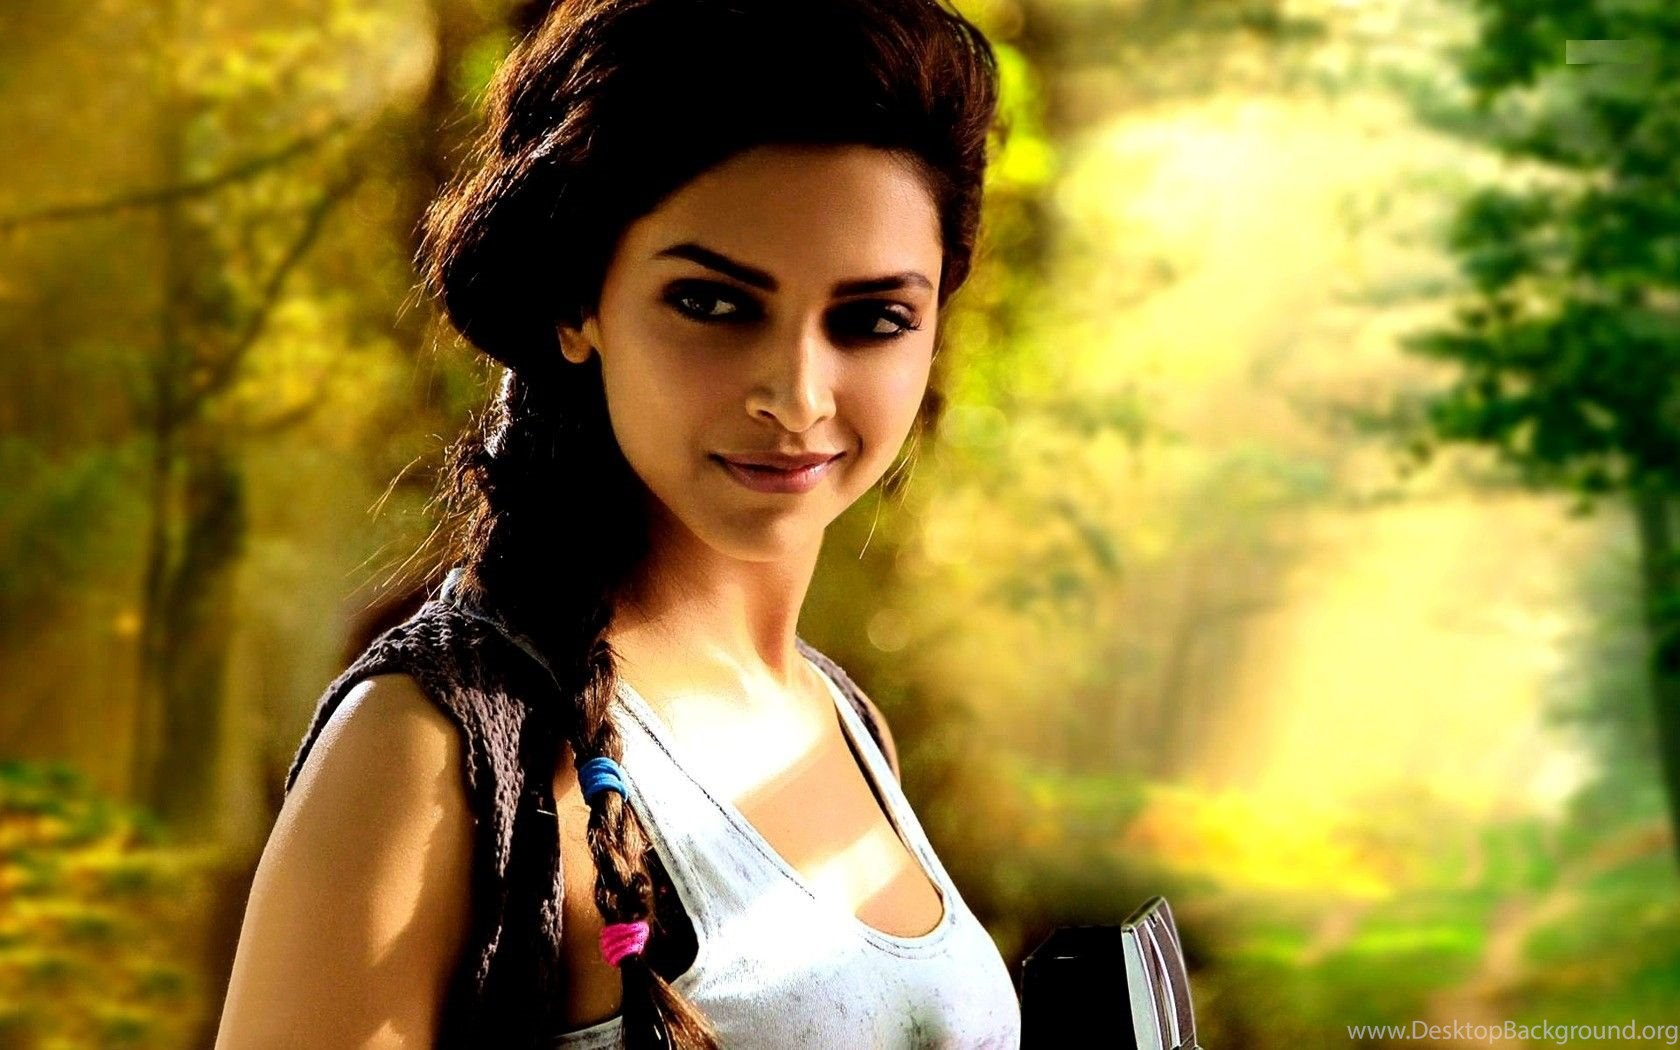 smile and cute face of bollywood actress deepika padukone hd photo